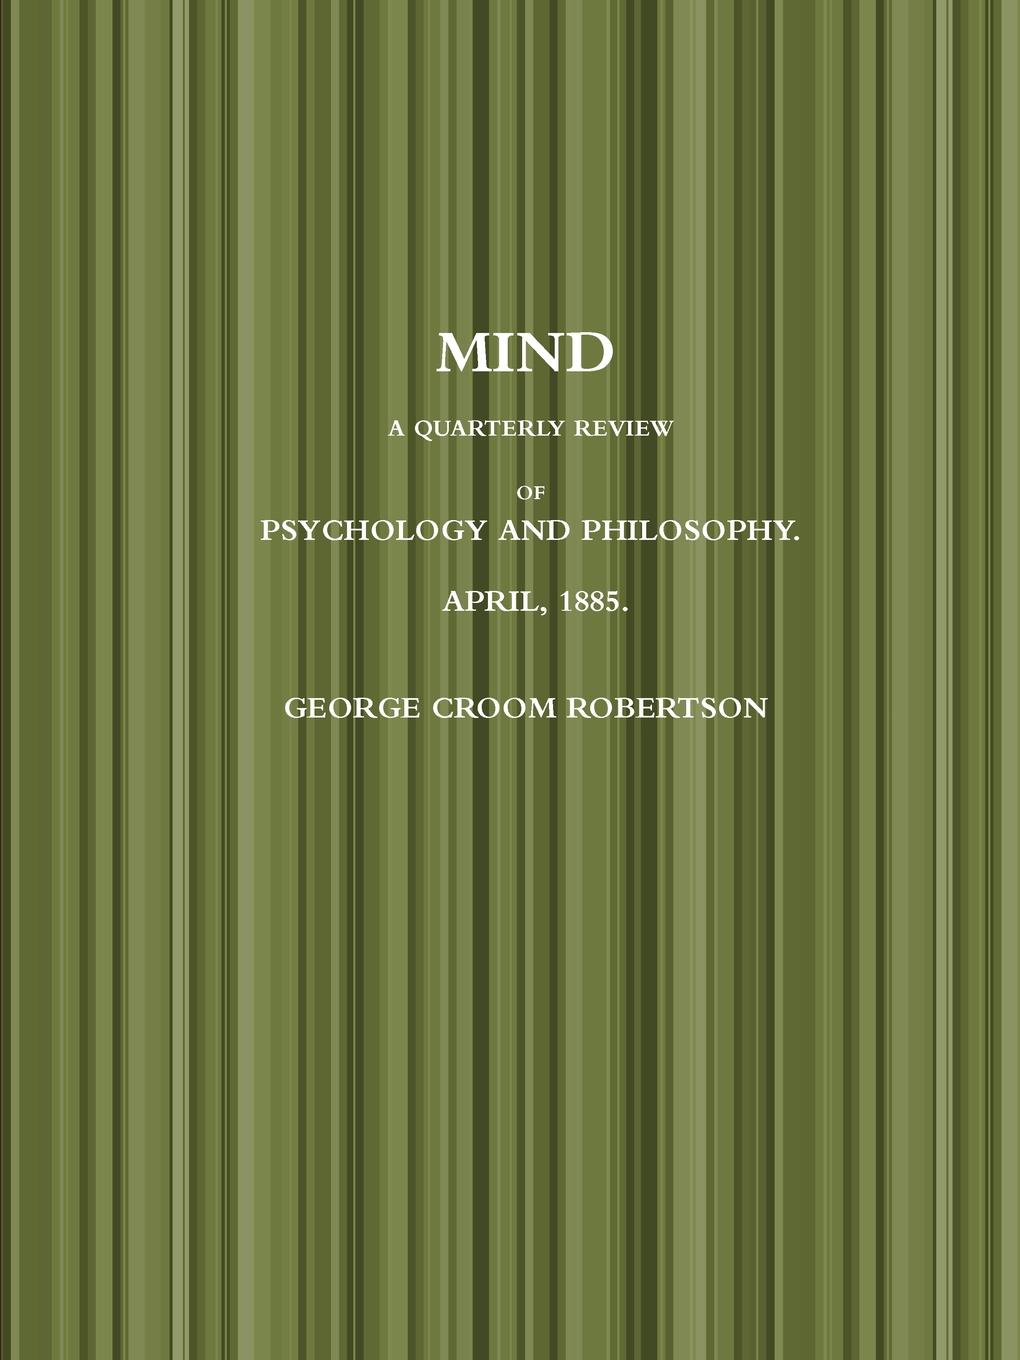 GEORGE CROOM ROBERTSON MIND A QUARTERLY REVIEW OF PSYCHOLOGY AND PHILOSOPHY. APRIL, 1885. pete mandik this is philosophy of mind an introduction isbn 9781118607480